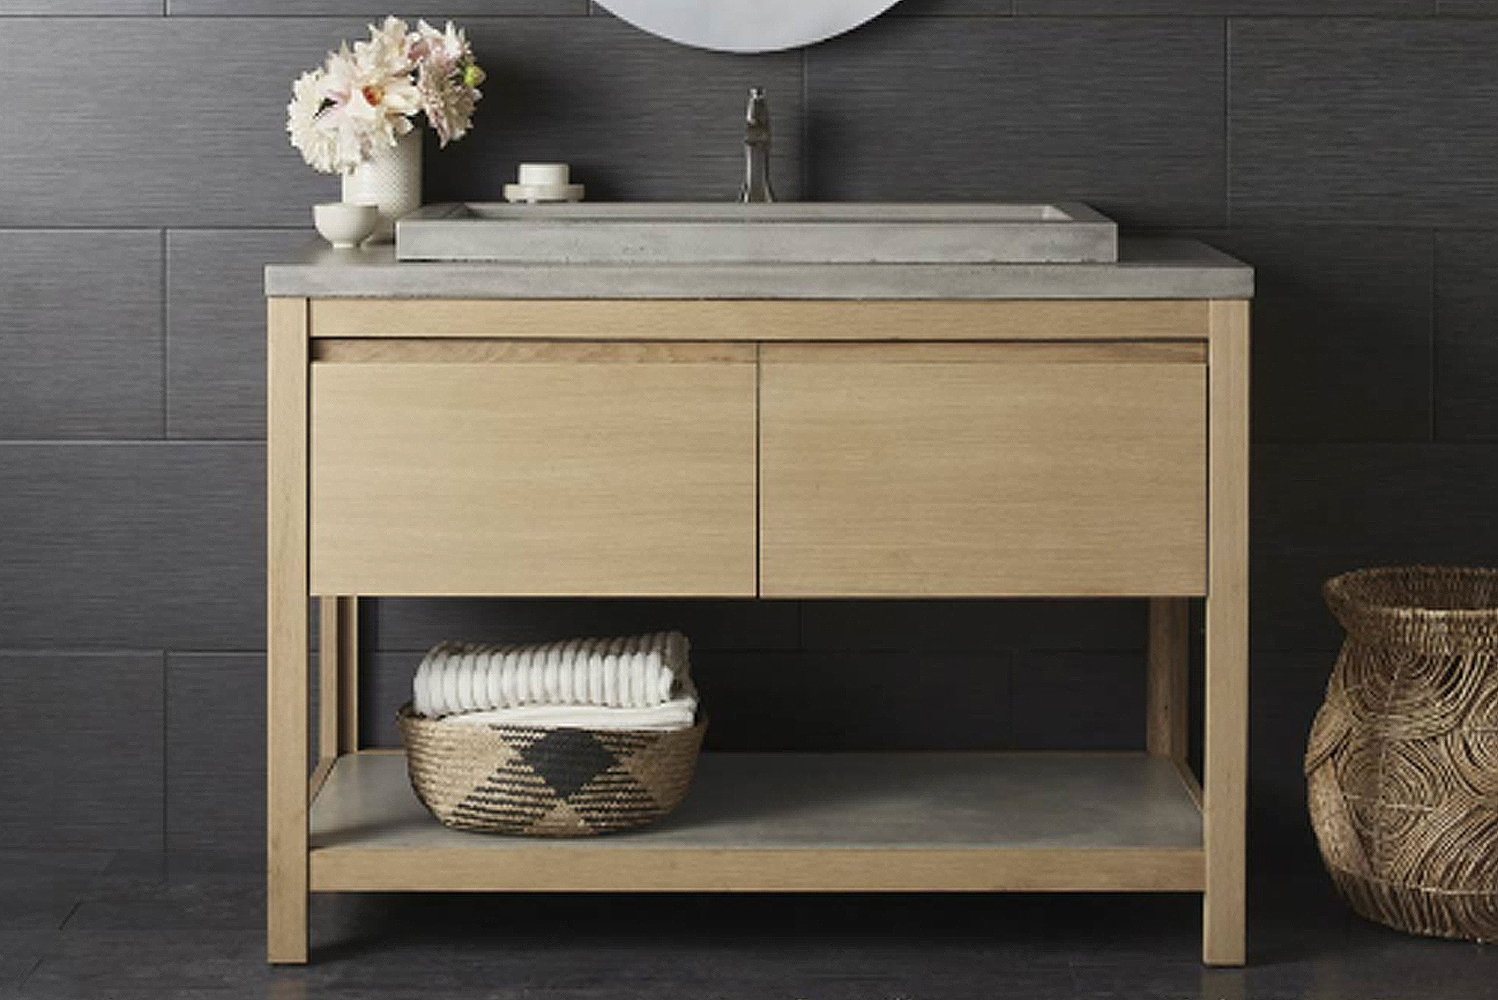 The Solace vanity features solid oak paired with NativeStone to create a transitional bathroom centerpiece.